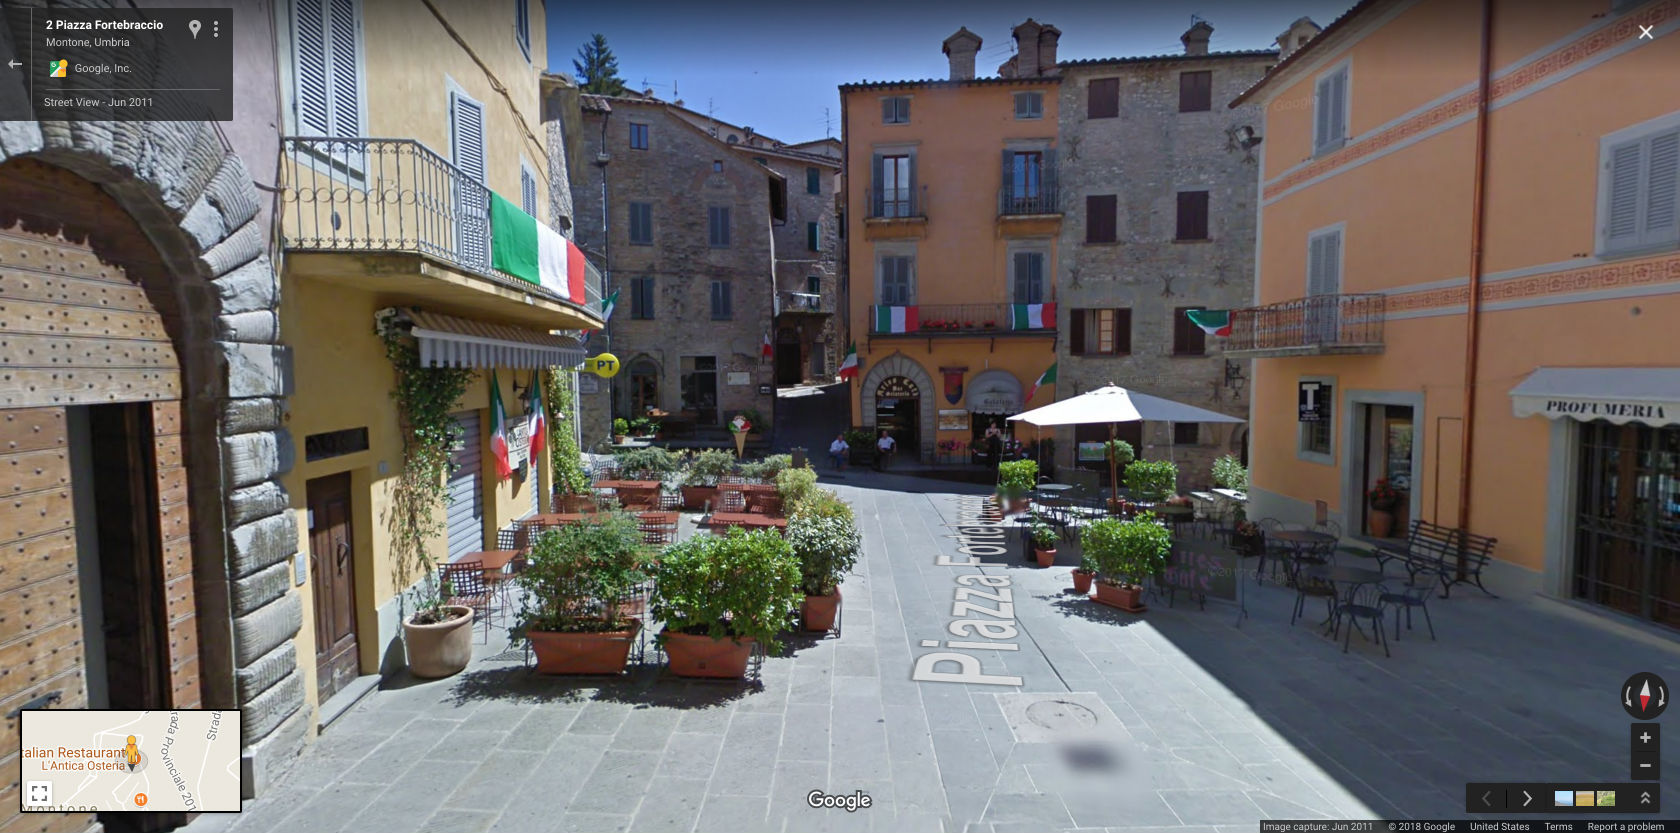 Streets of Montone. They didn't need expensive transit infrastructure to build this, so neither do you. (Source: Google Maps )